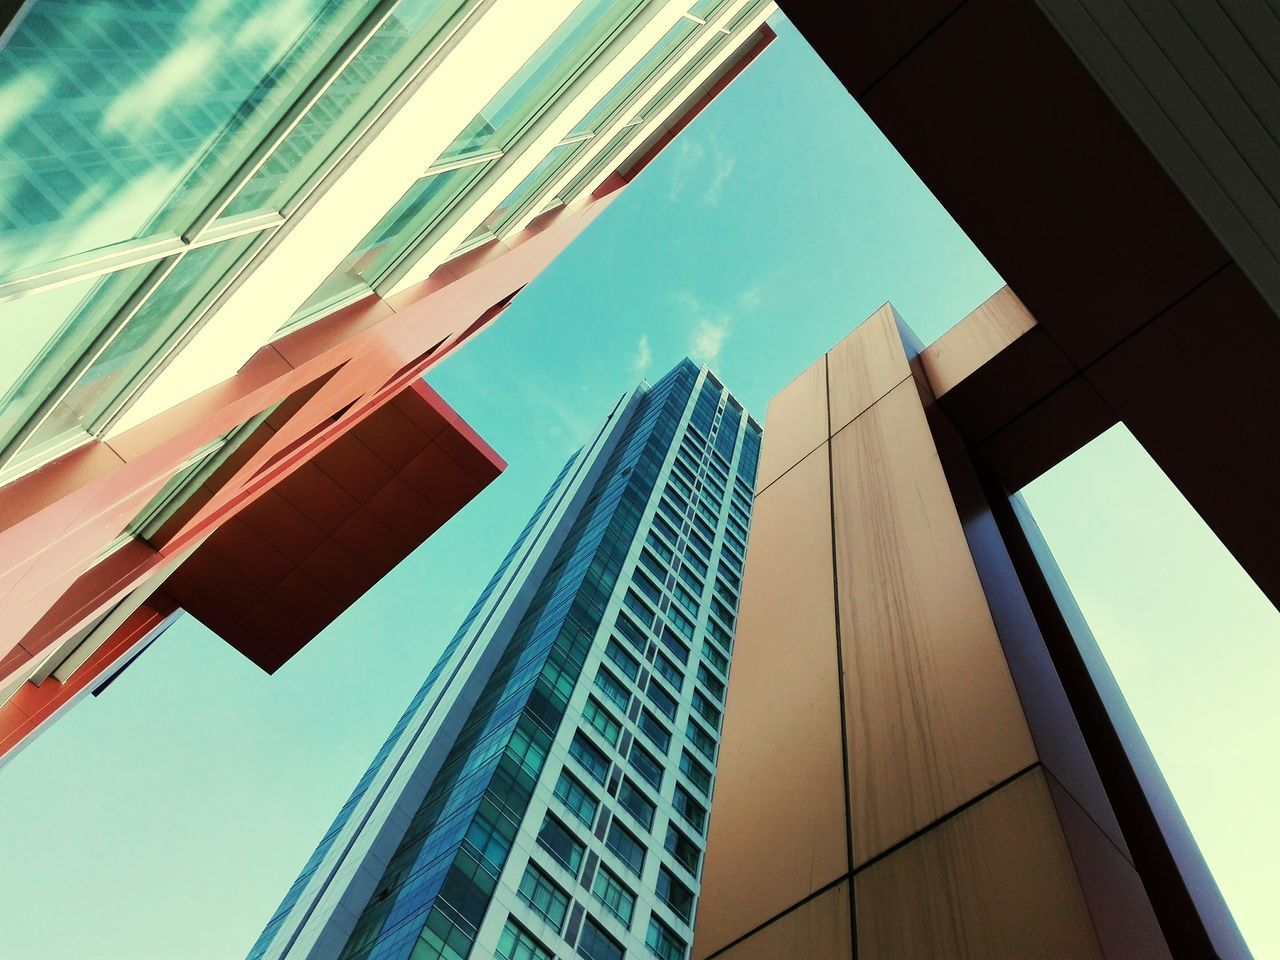 Modern, Architecture, Exterior, Construction, Design, Urban, Building, Light, City, Structure, Futuristic, Background, Business, Contemporary, White, Architectural, People, Detail, Pattern, Wall, Blue, Black, Geometric, Office, Glass, Dark, Perspective, S Building,tower,city,town First Eyeem Photo